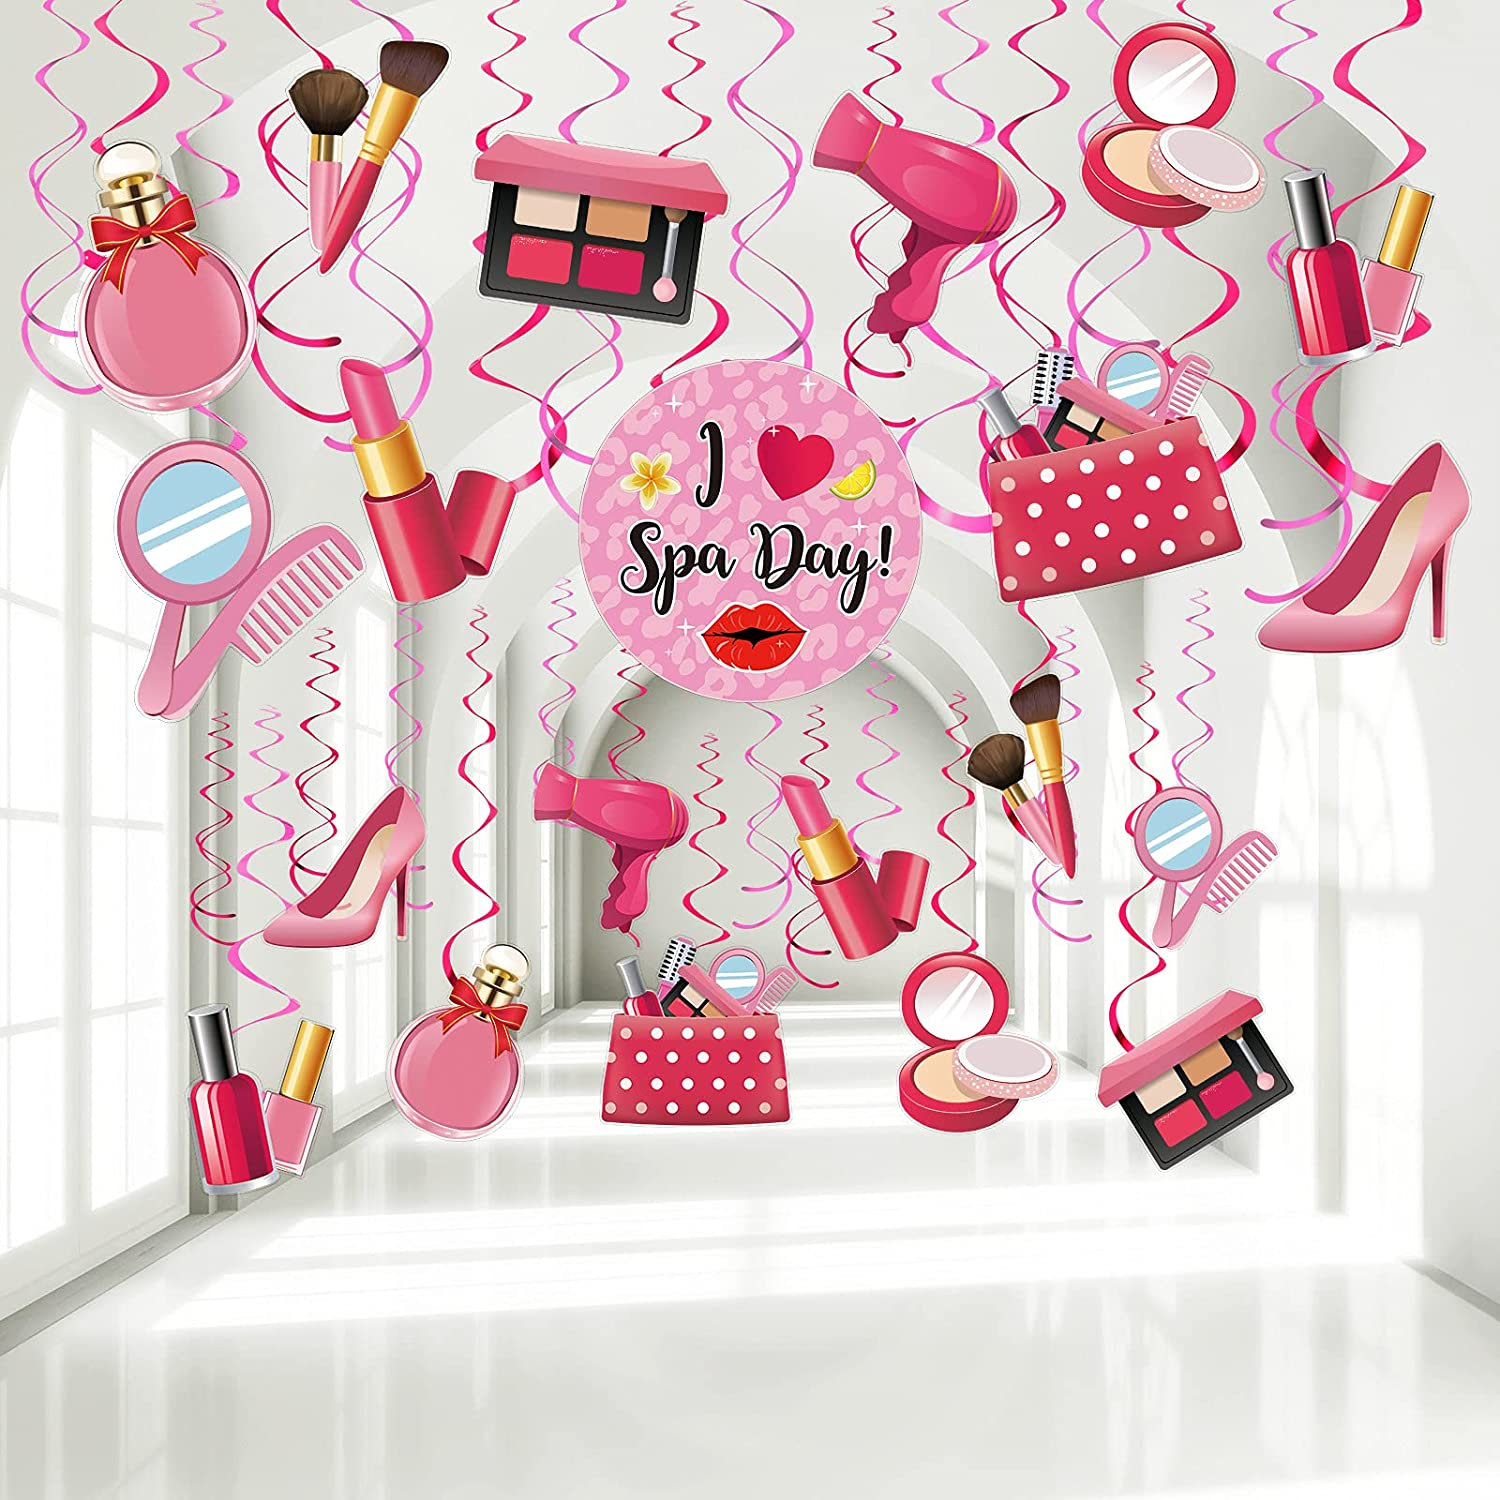 30 Pieces Spa Day Hanging Swirl Decorations, Makeup Party I Love Spa Sign Foil Swirls Ceiling Decor Cutout Card for Girl Women Nail Birthday Theme Party Garden Fairy Party Baby Shower Supplies